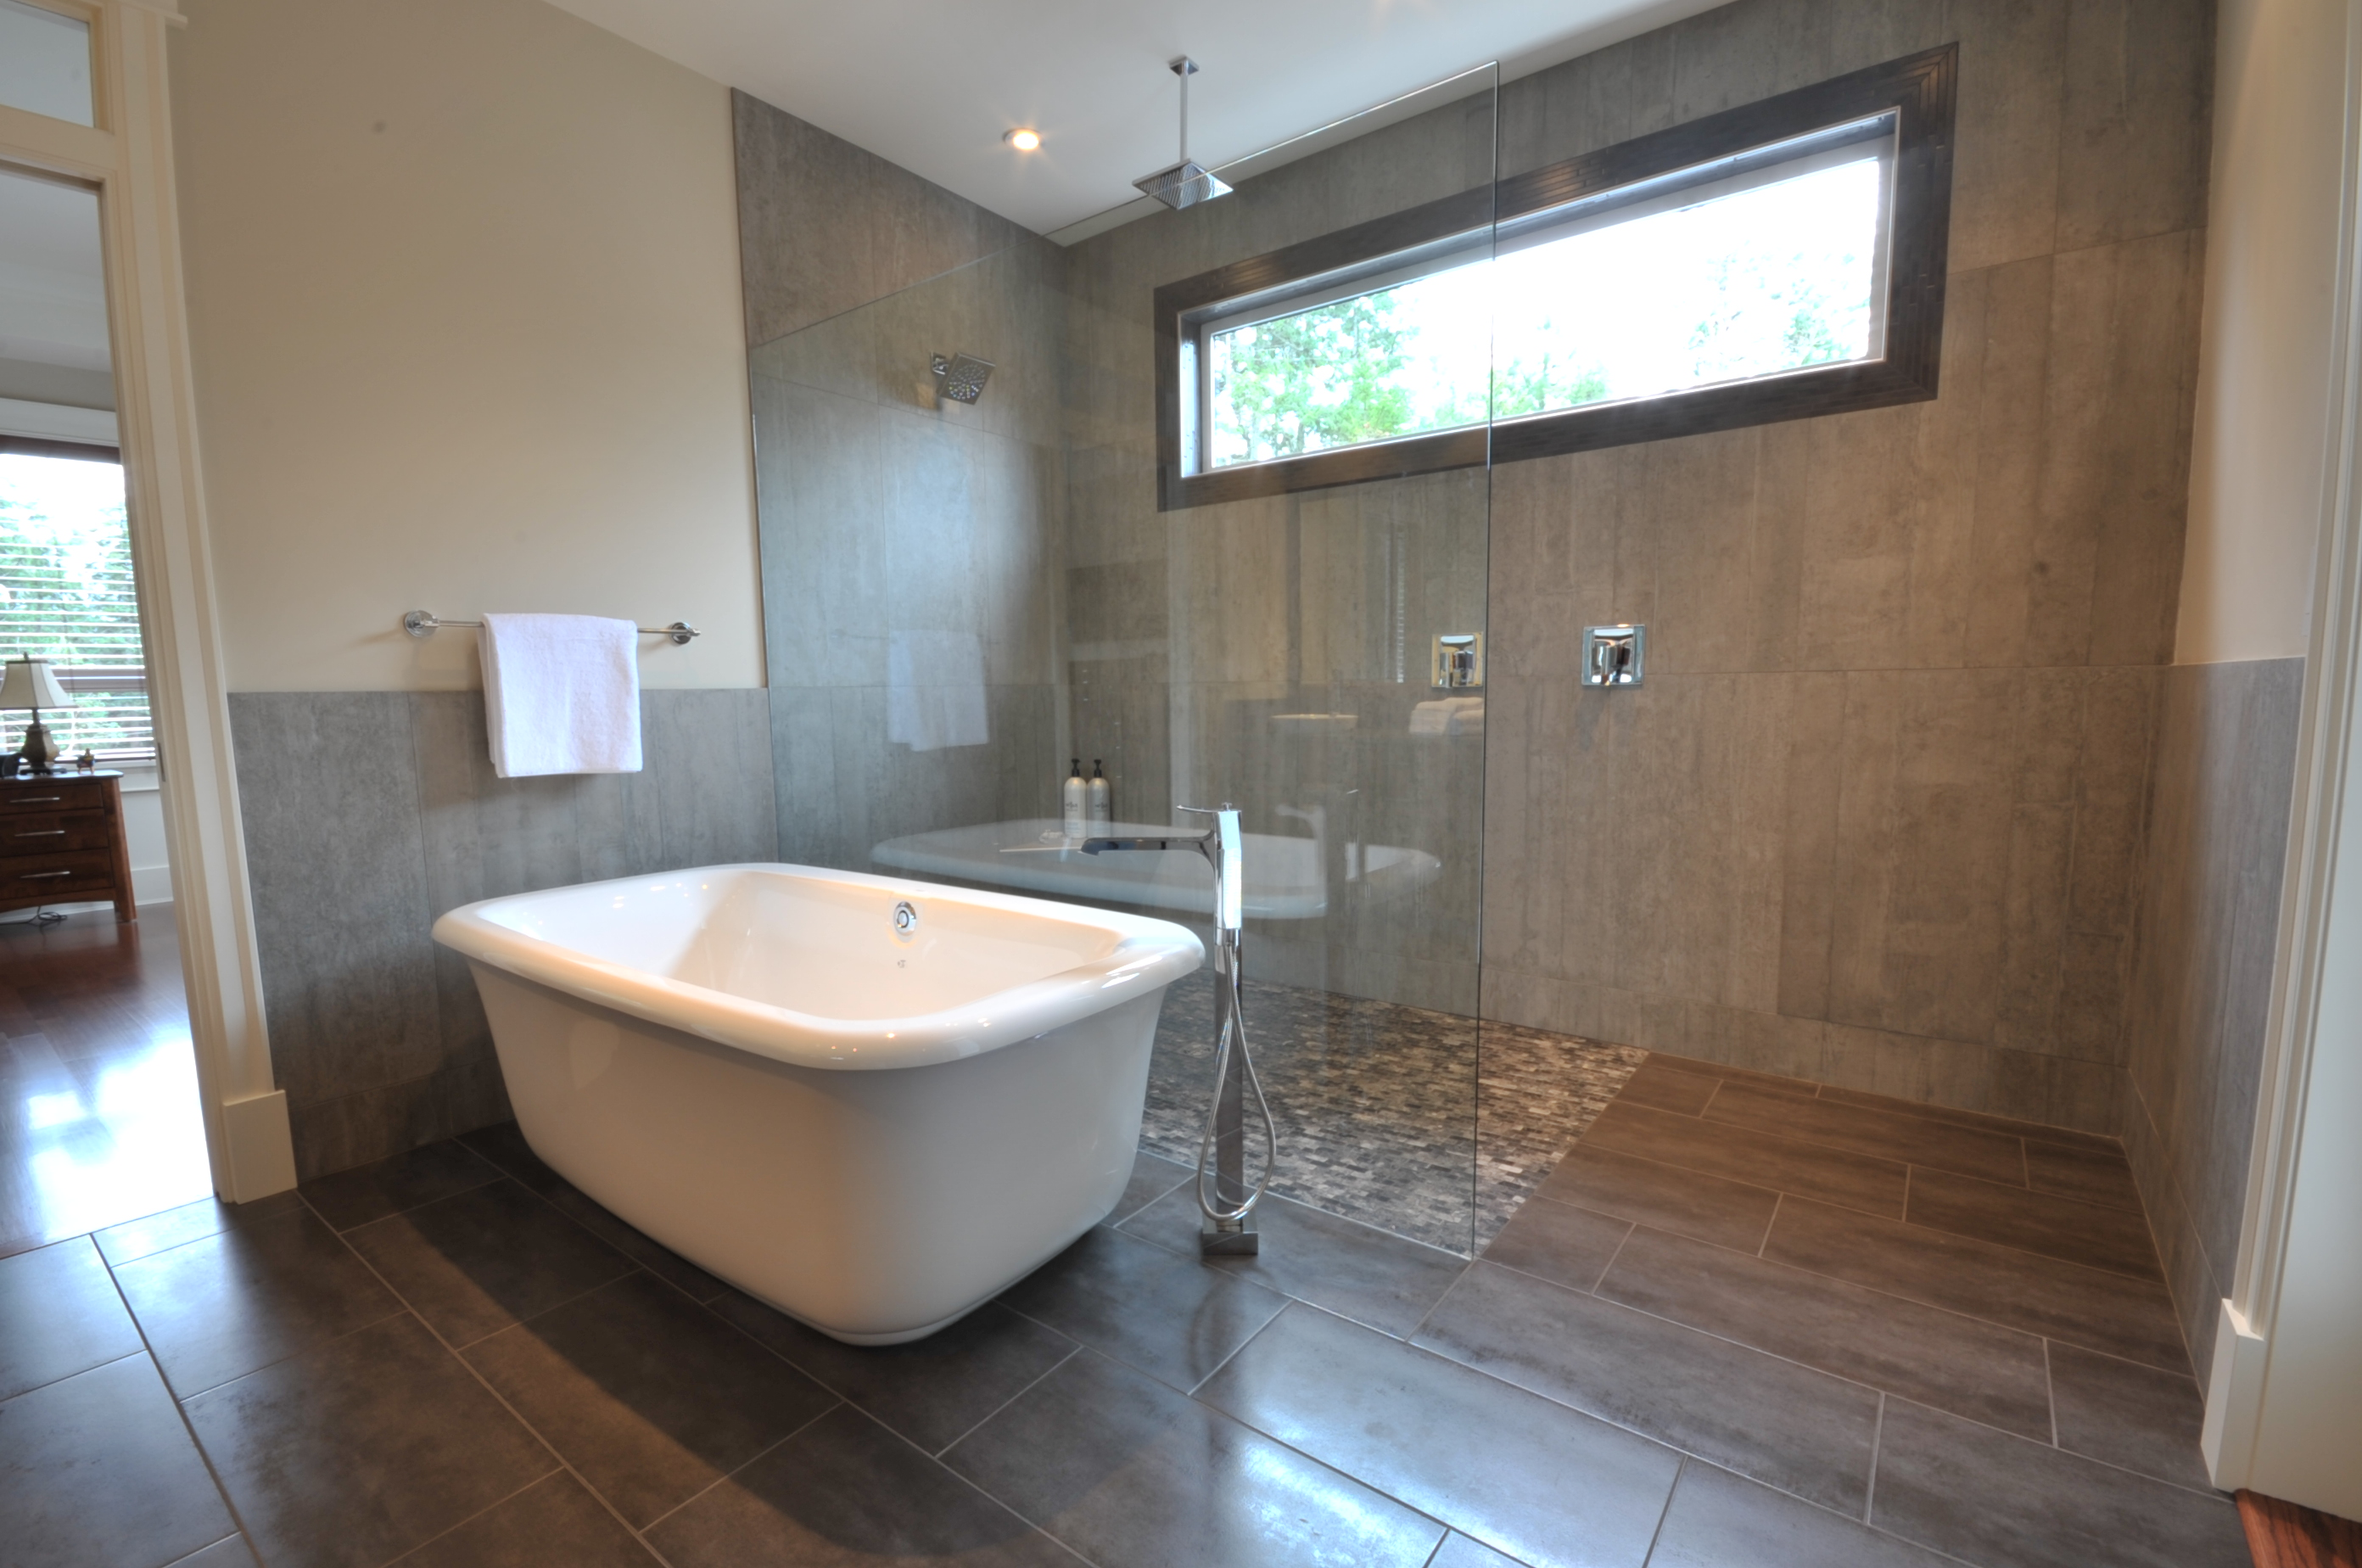 C&S Tile Ensuite Curbless Soaker Tub